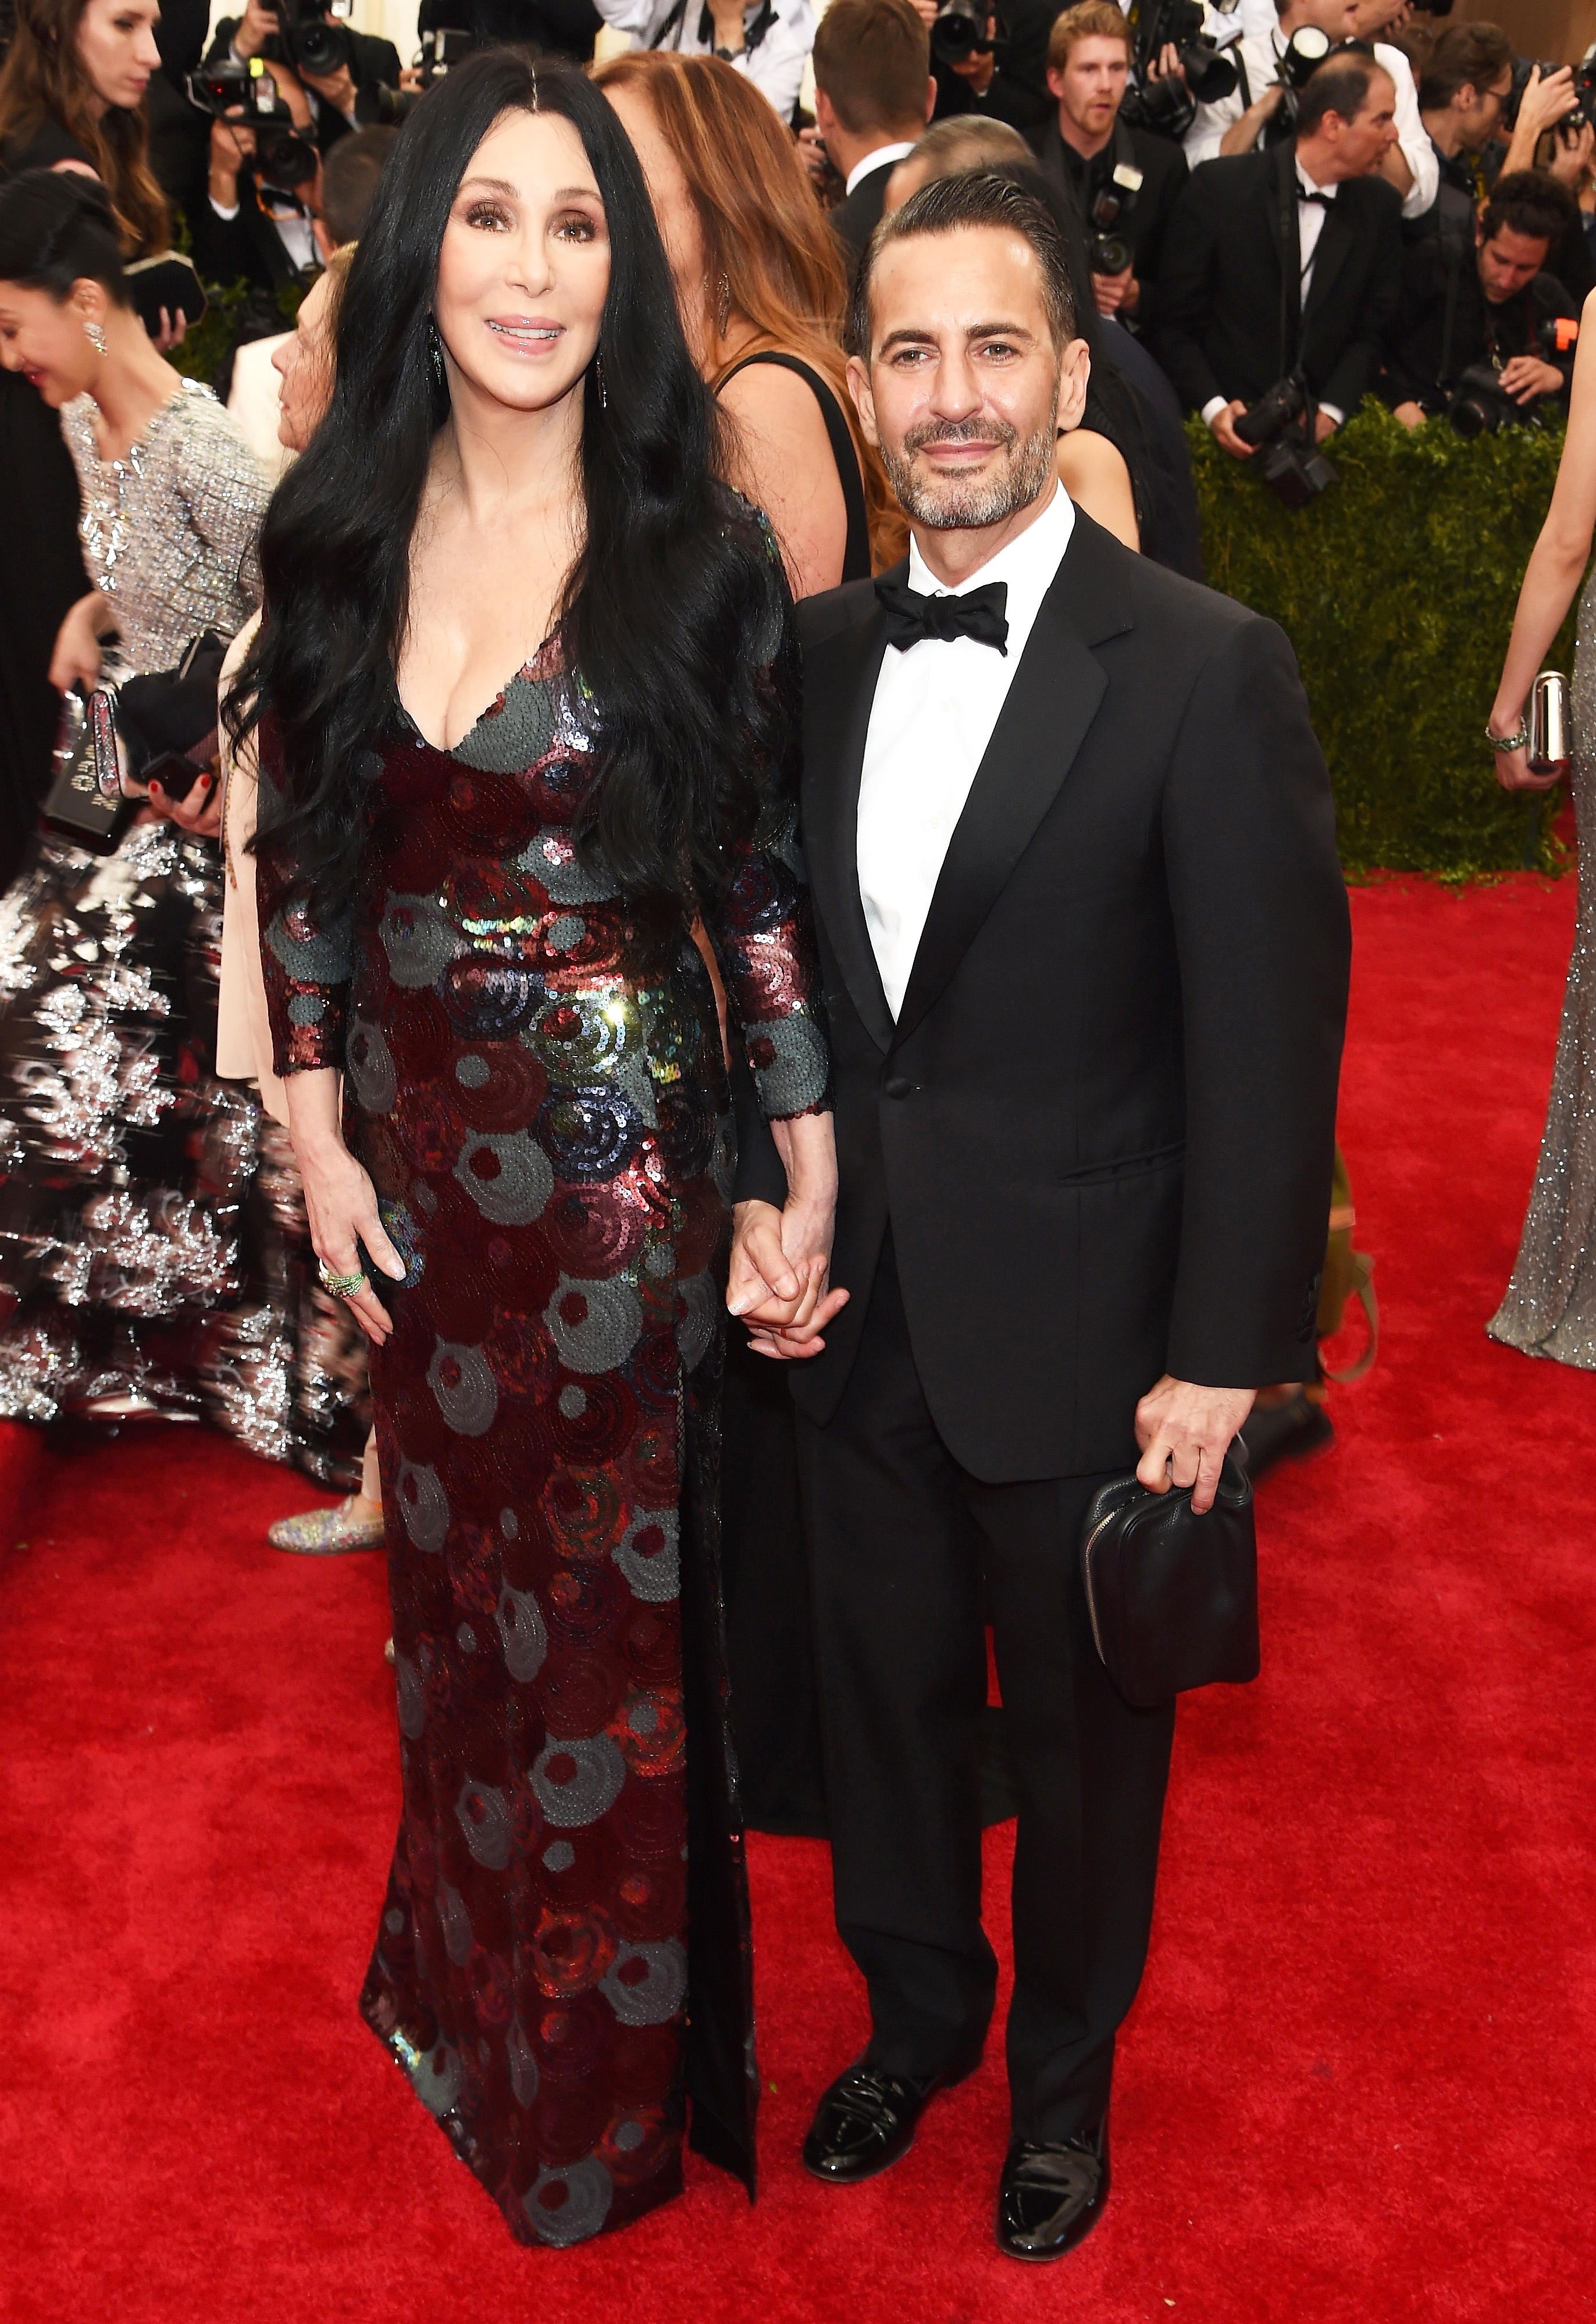 Cher and designer Marc Jacobs attend the Metropolitan Museum's Costume Institute Gala in New York City on May 4, 2015.